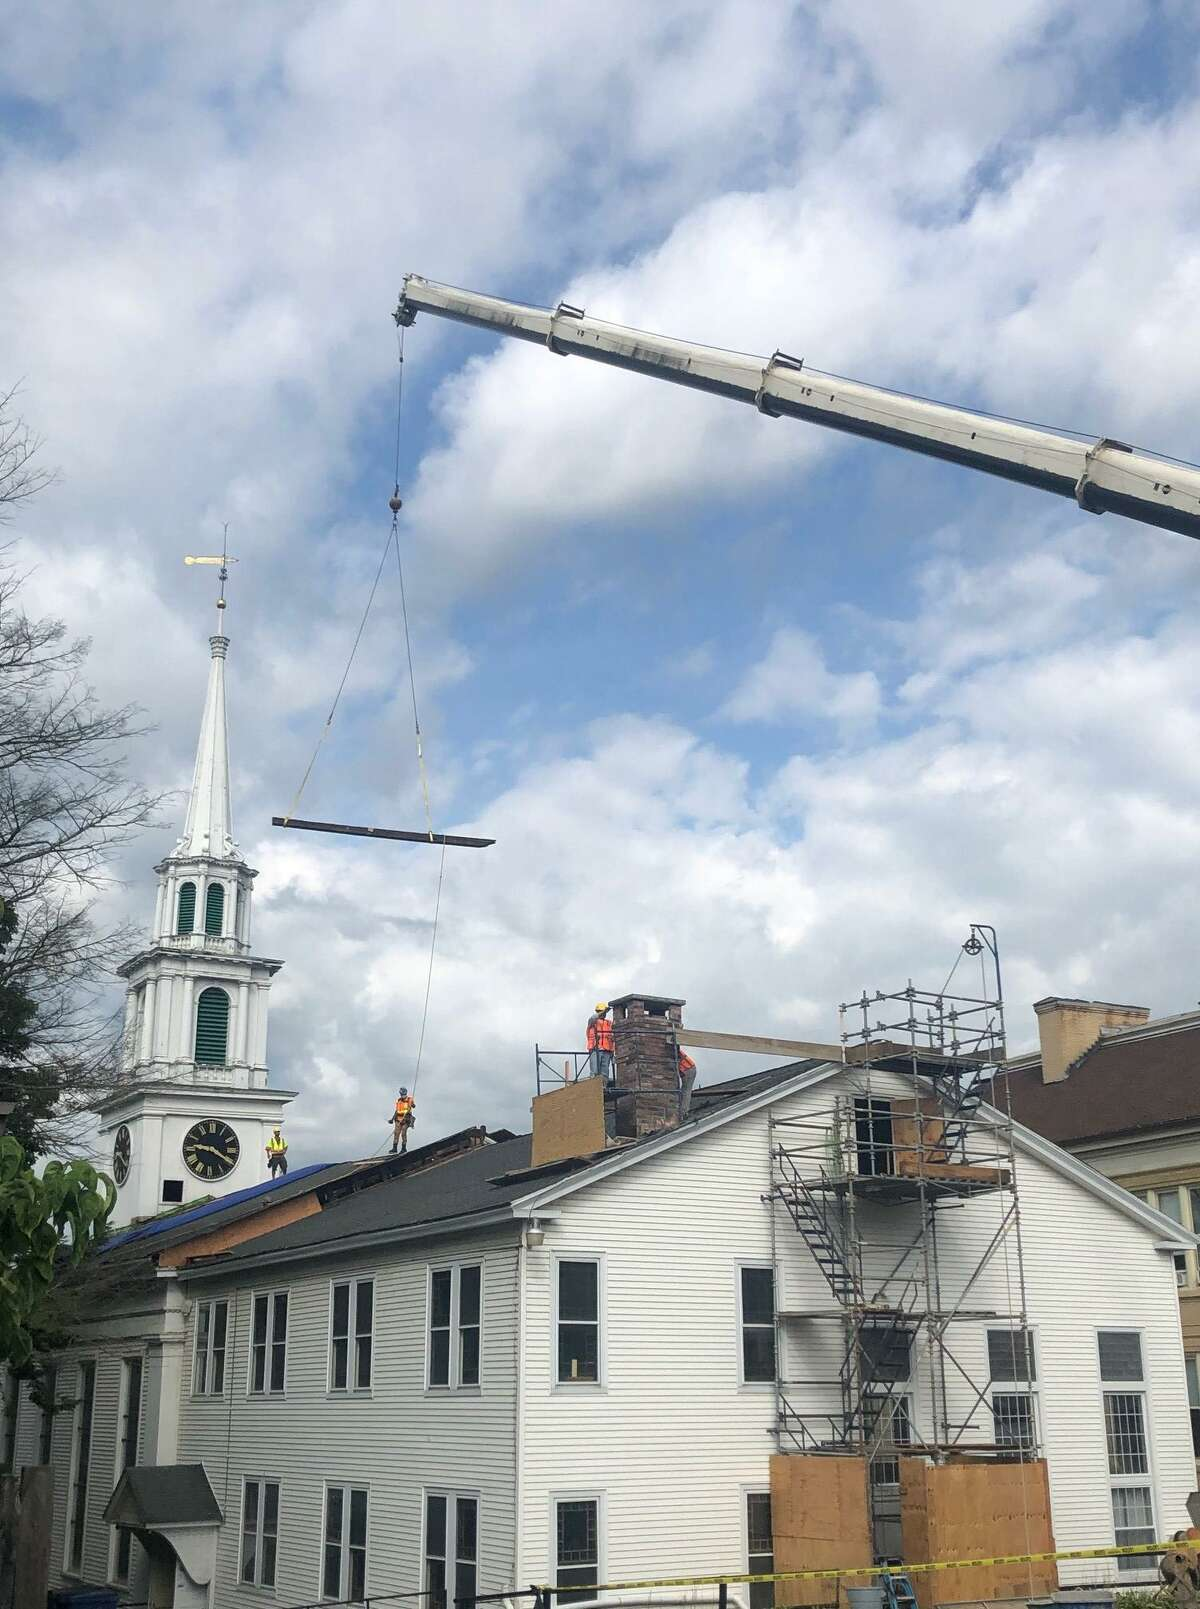 Spectrum/A crowd of First Congregational Church officials and members gathered Aug. 13, 2020 at the on Main Street church in New Milford to view the removal of an historical roof beam from the church building and the installation of a new, steel beam that will stabilize the church building. The roof has been supported by a temporary steel structure since 2013. Above, the first of four pieces of the original structural beam in the church's roof is removed and set in the church parking lot.